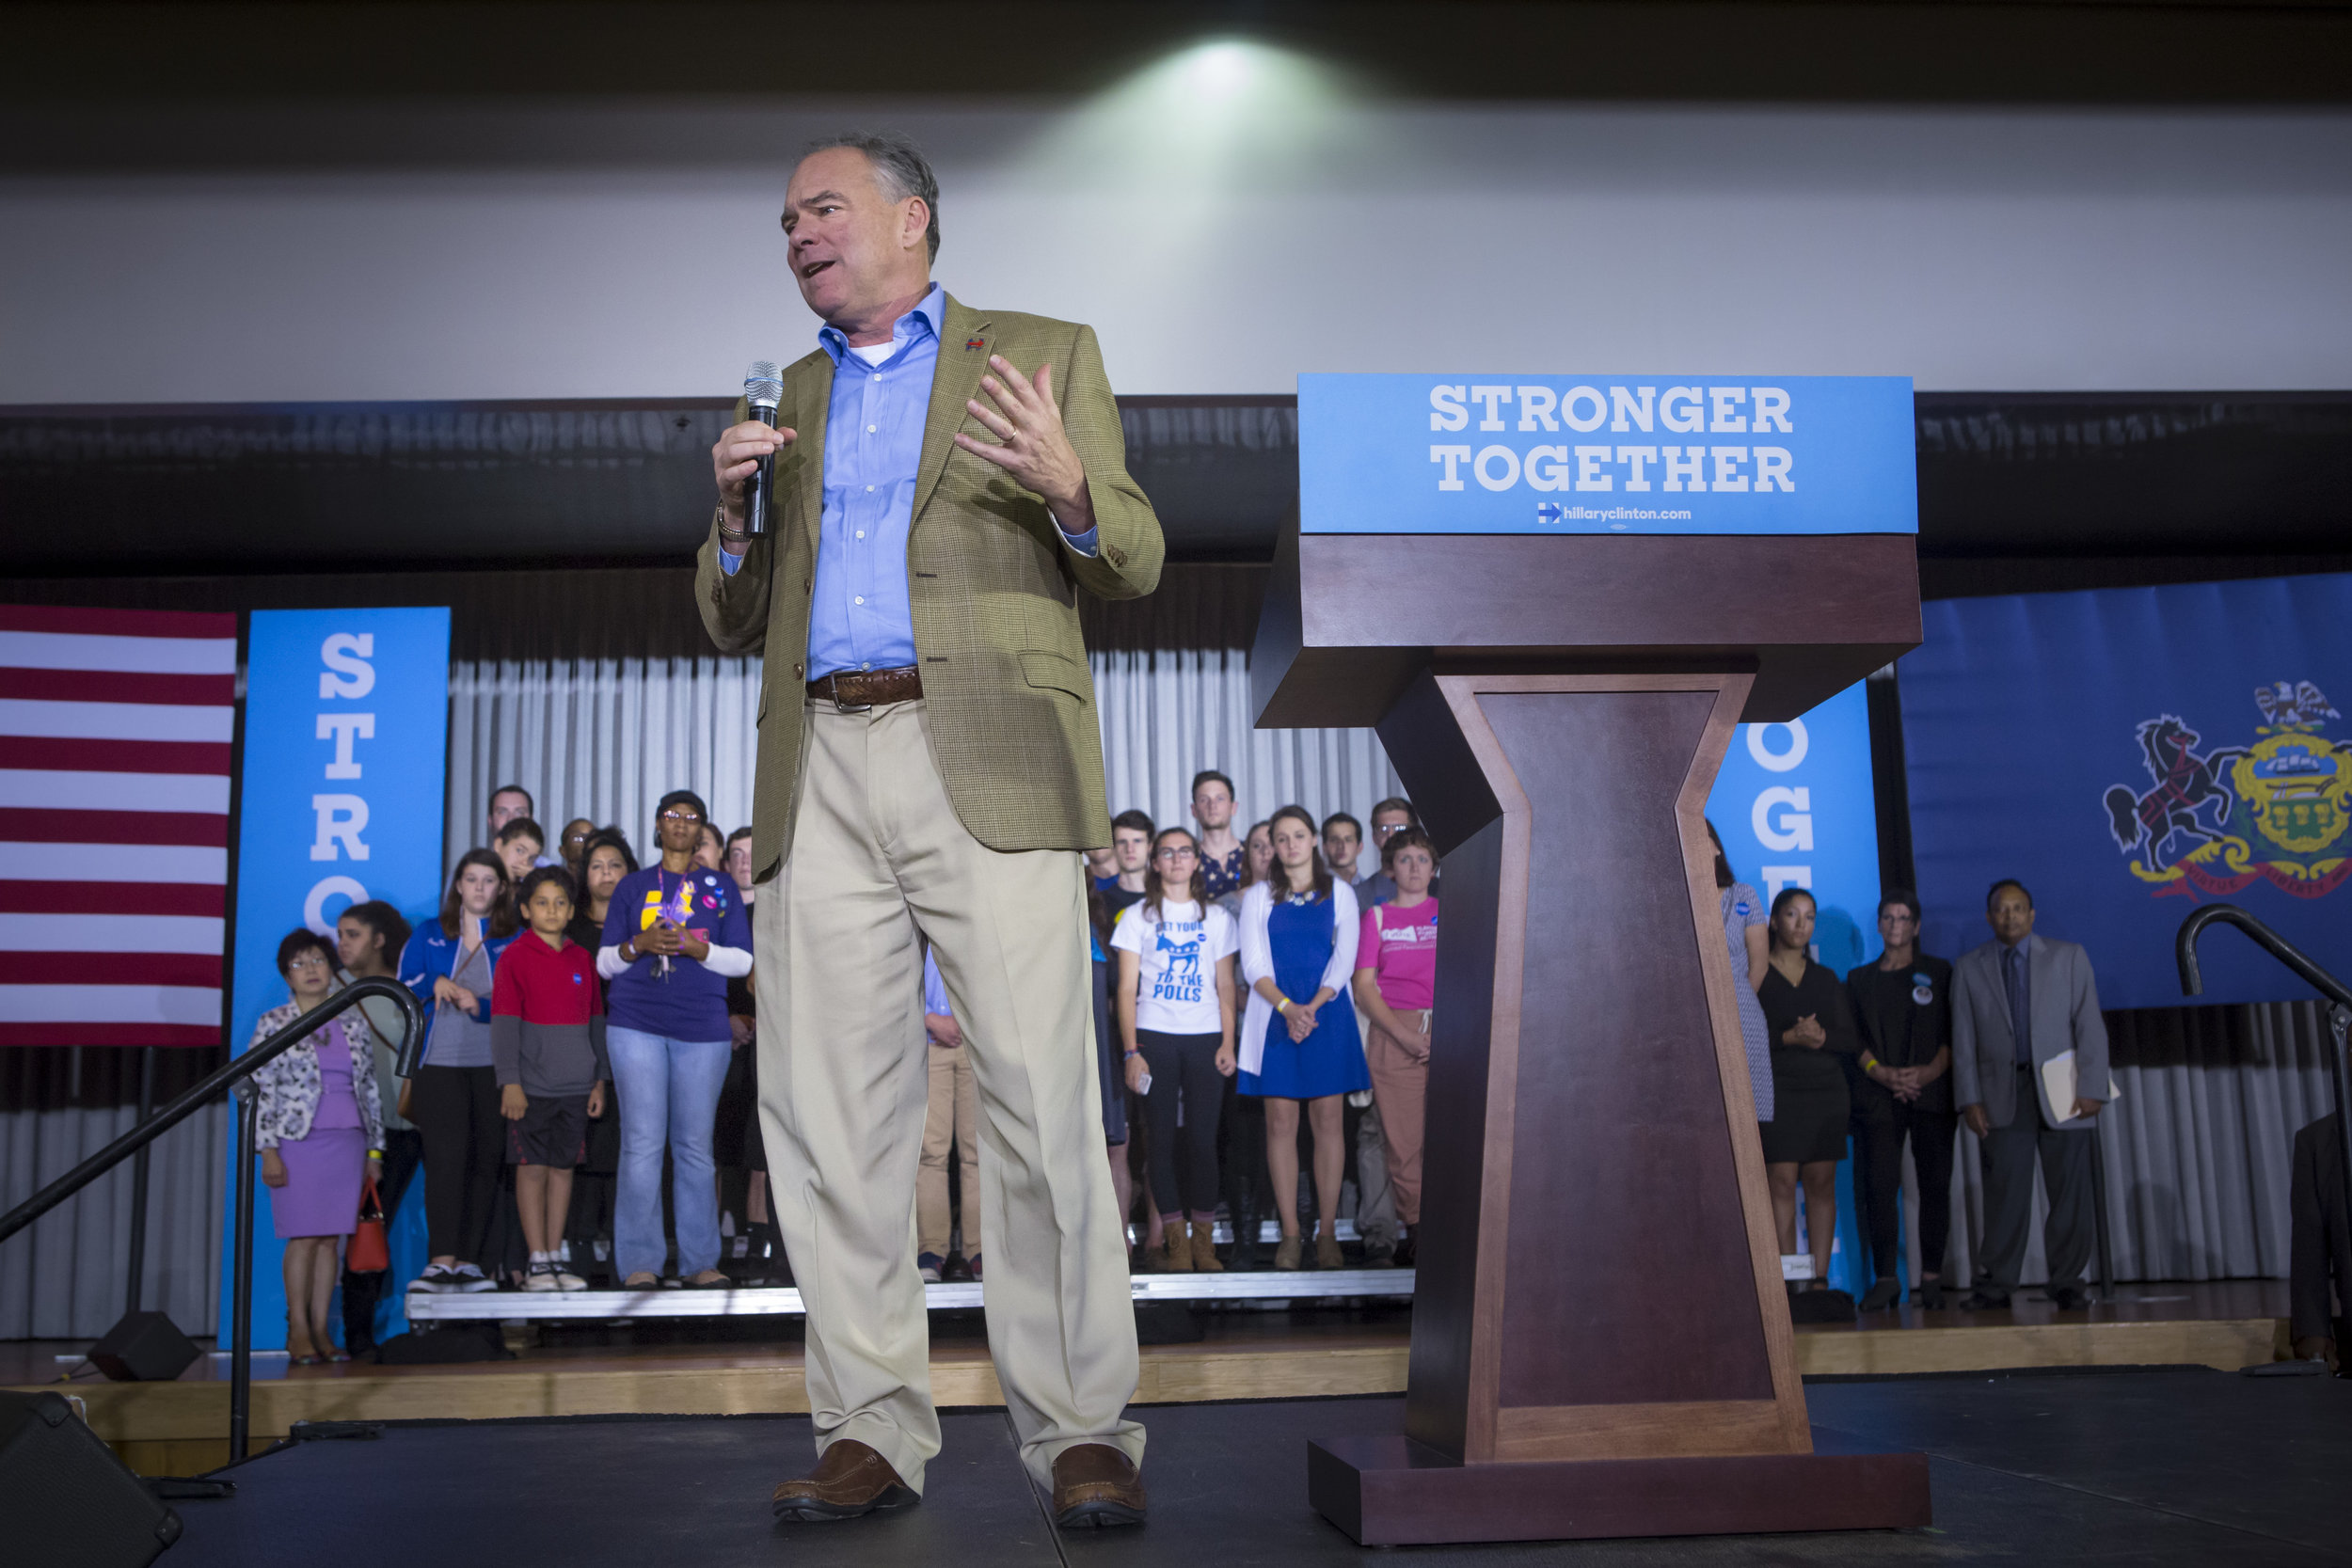 10052016_BJM_Tim_Kaine_Campaigns_in_Philadelphia_Pennsylvania_04.jpg